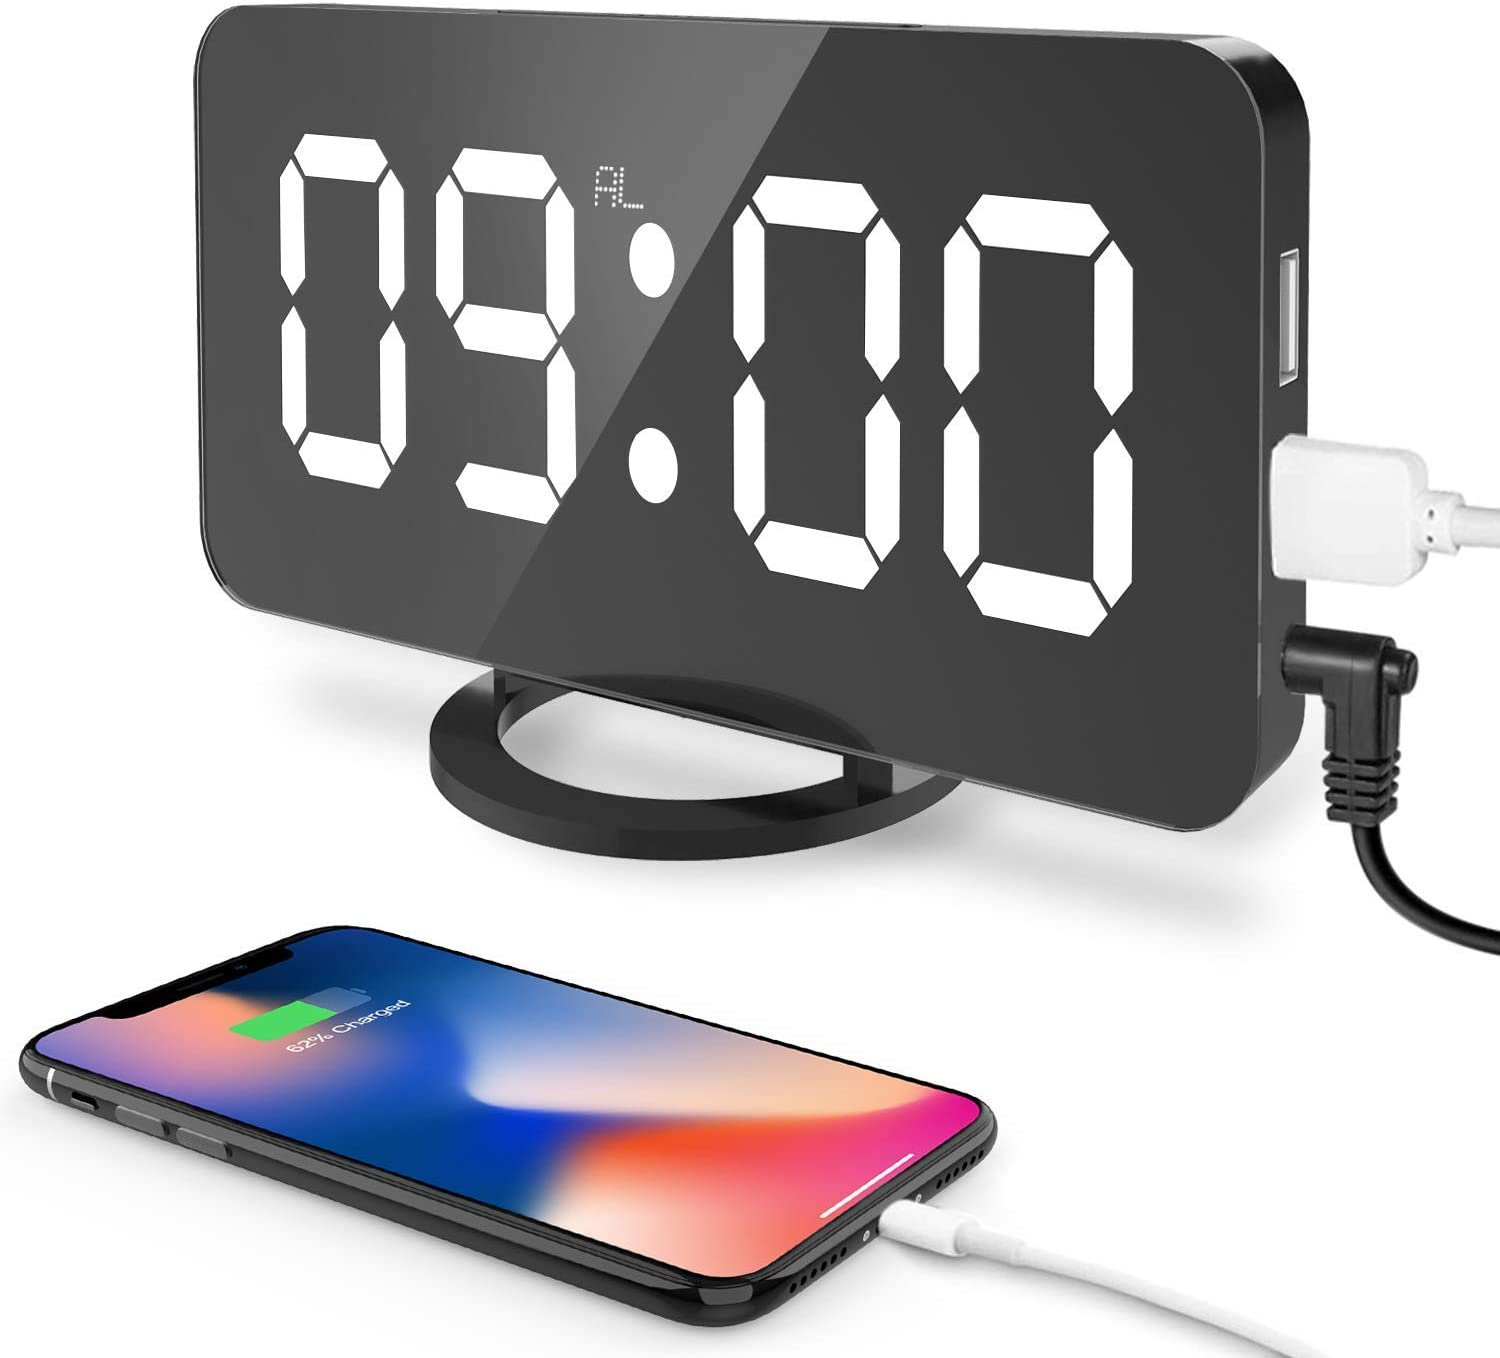 """Digital Alarm Clock, Large 6.5"""" LED Easy-Read Night Light Dimmer Display Clock with Dual USB Charger Port, Snooze Function Adjustable Brightness for Bedroom Living Room Decor"""